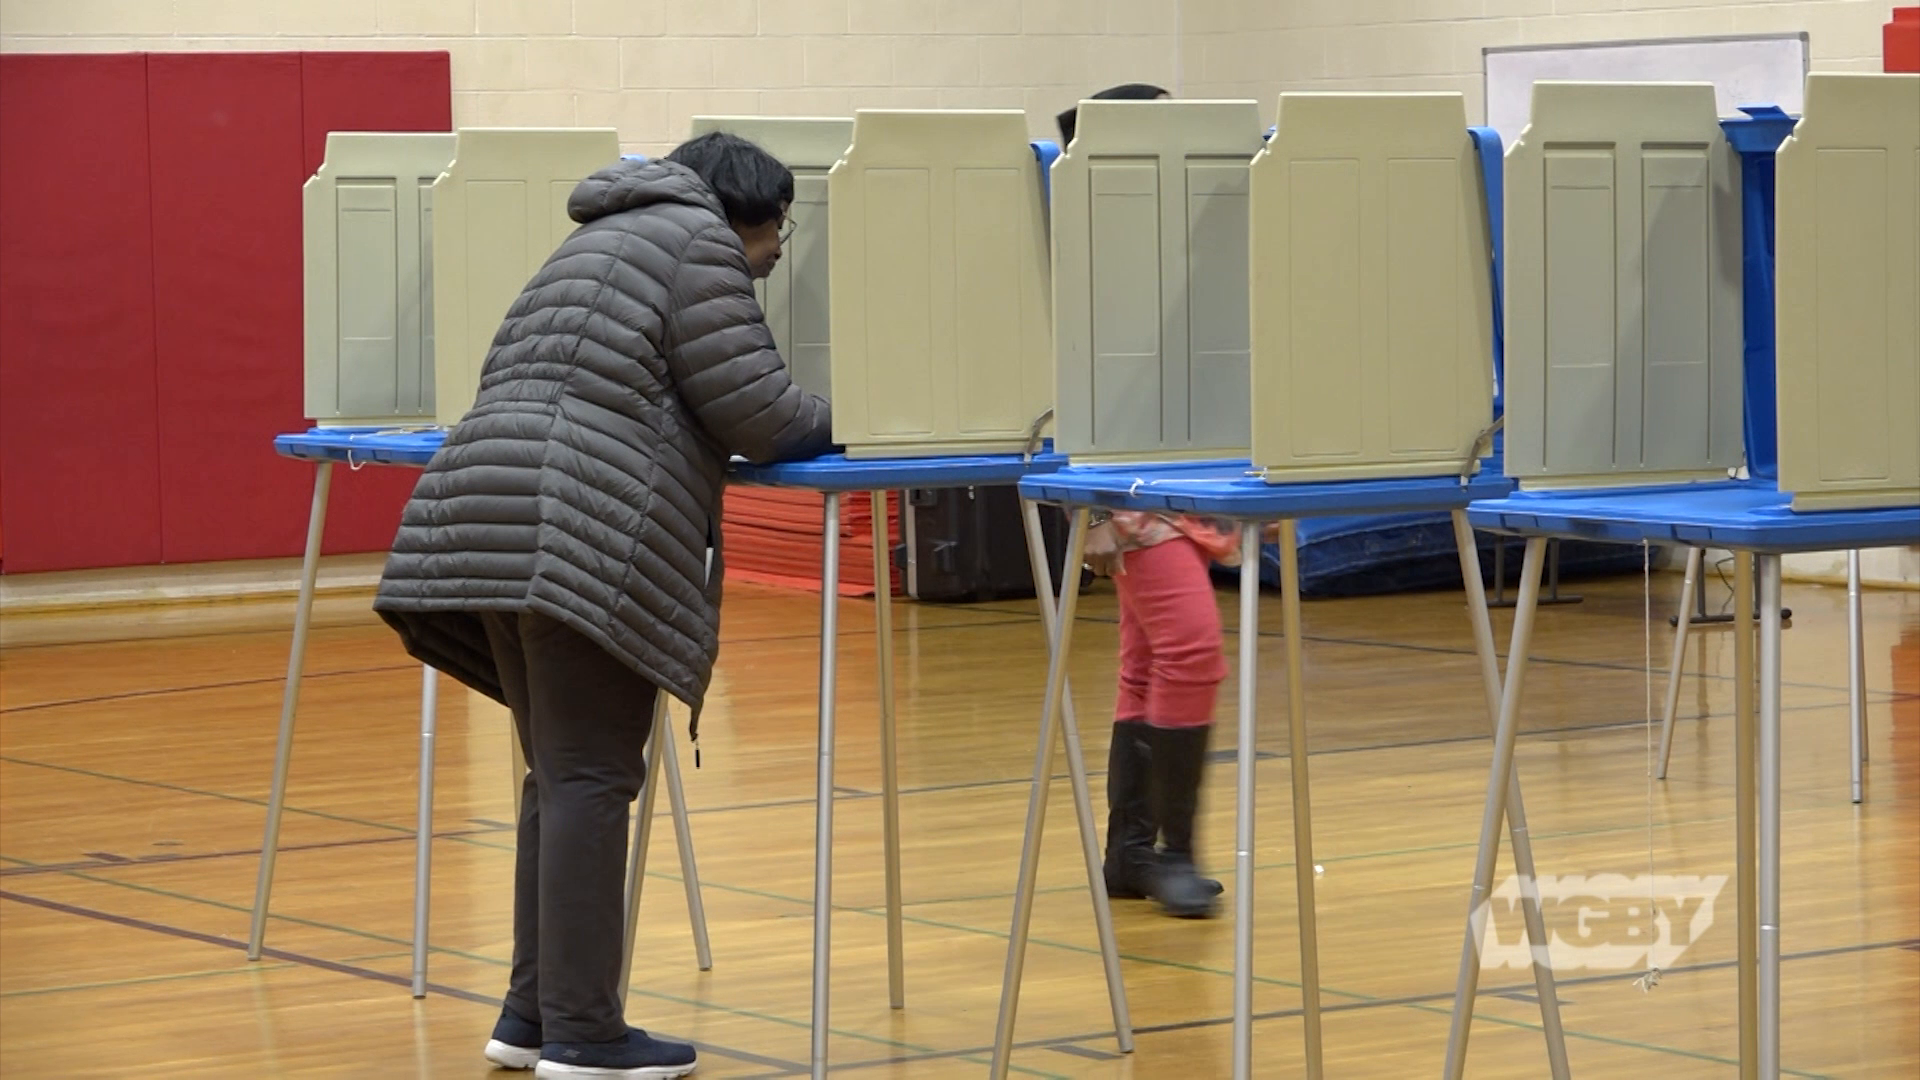 WATCH: Carolee McGrath heads to the polls in Springfield, Agawam, & West Springfield to learn what issues matter to western Mass voters on Super Tuesday.